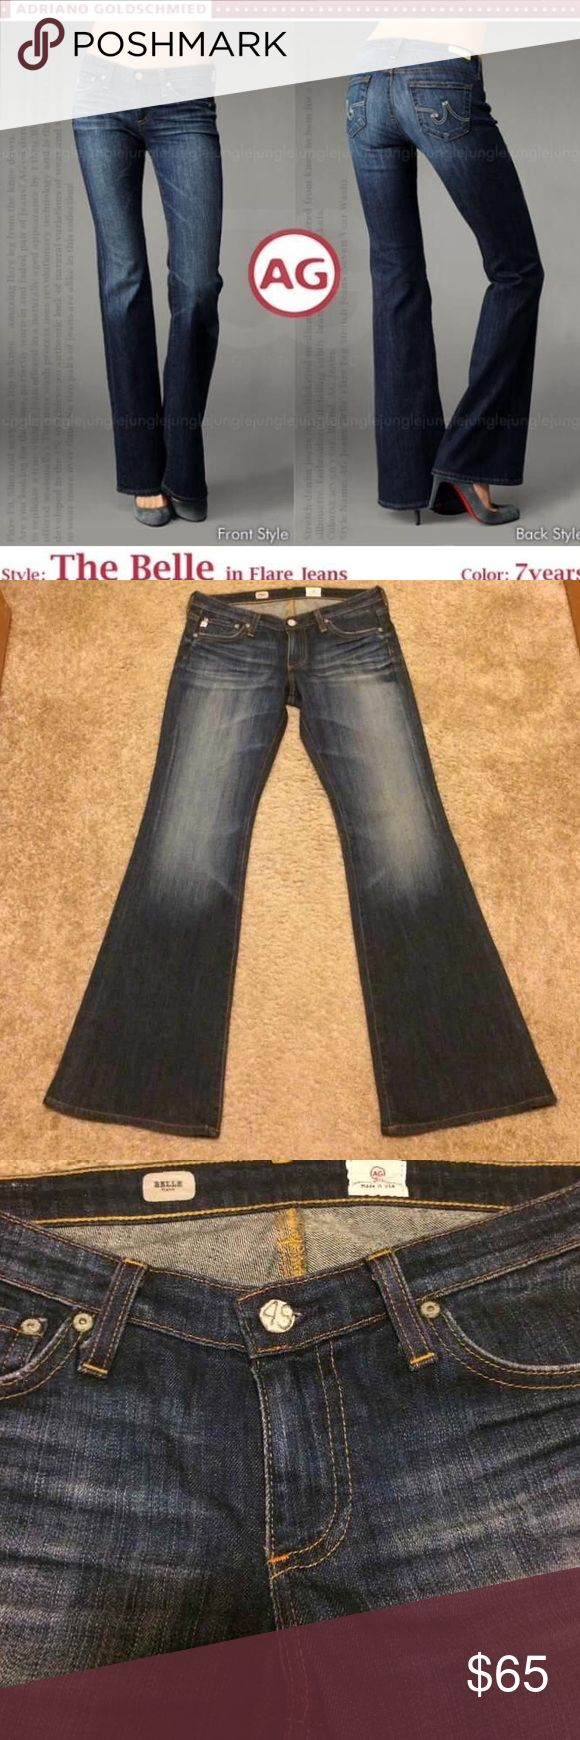 AG Adriano Goldschmied Belle Flare Jeans 7 yr AG Adriano Goldschmied Belle Flare Jeans in 7 year wash, size 28.  Distressing throughout, excellent condition. AG Adriano Goldschmied Jeans Flare & Wide Leg